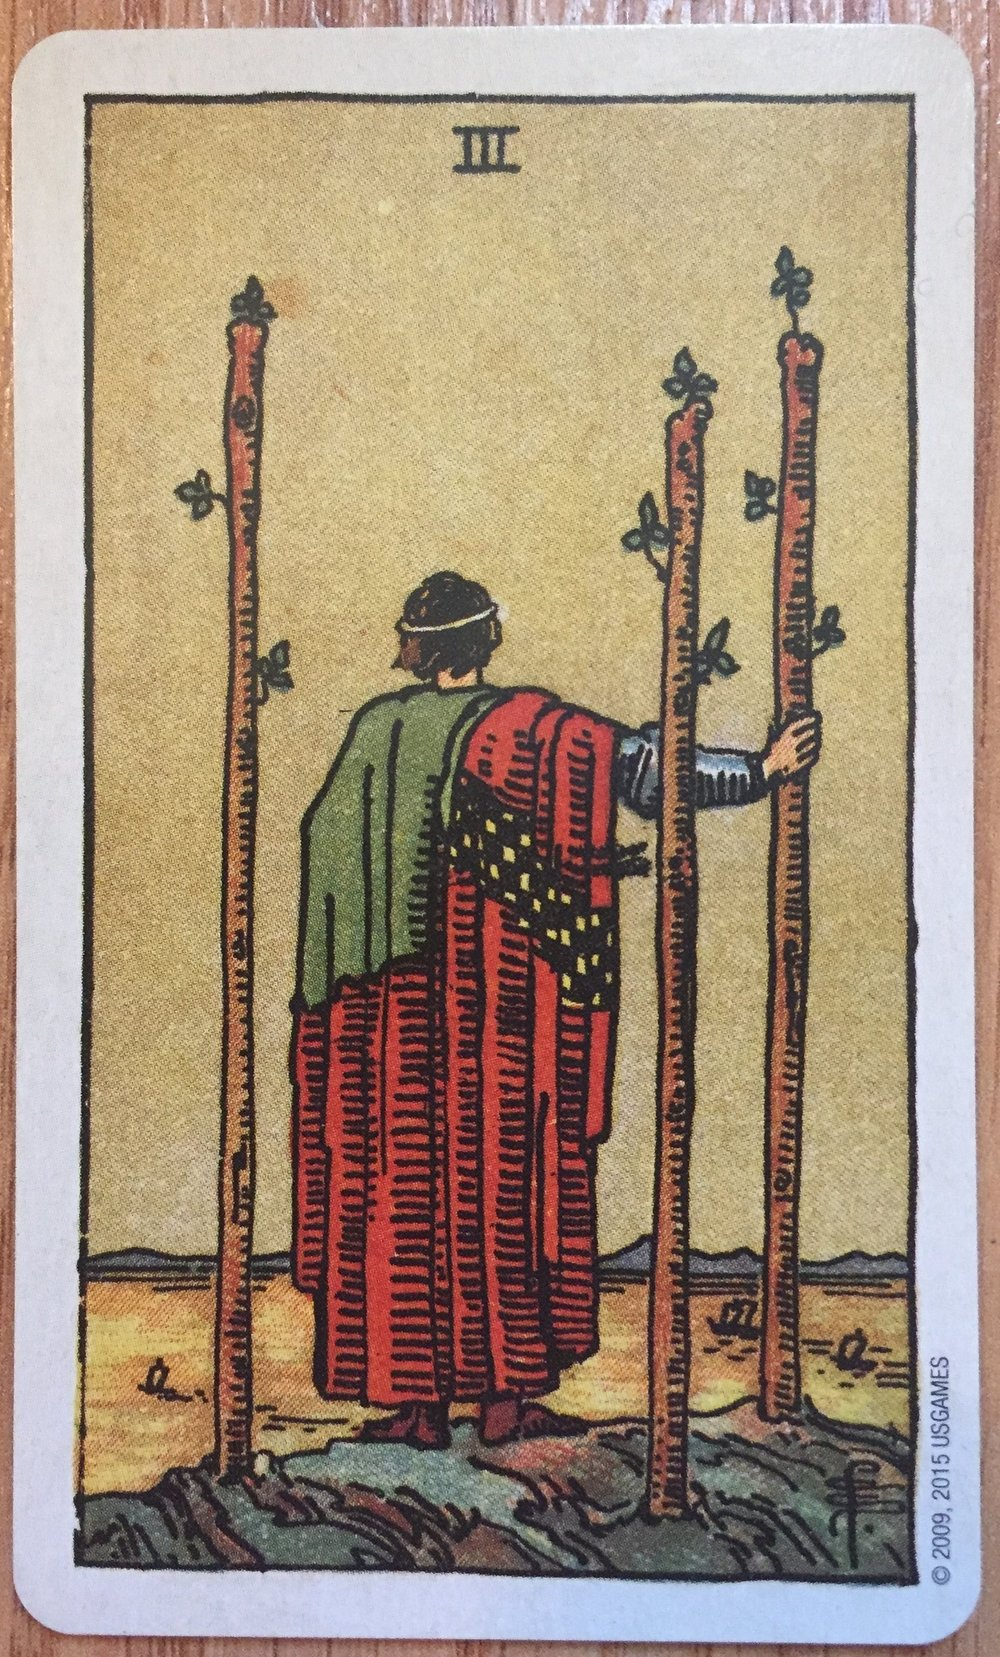 The 3 of Wands